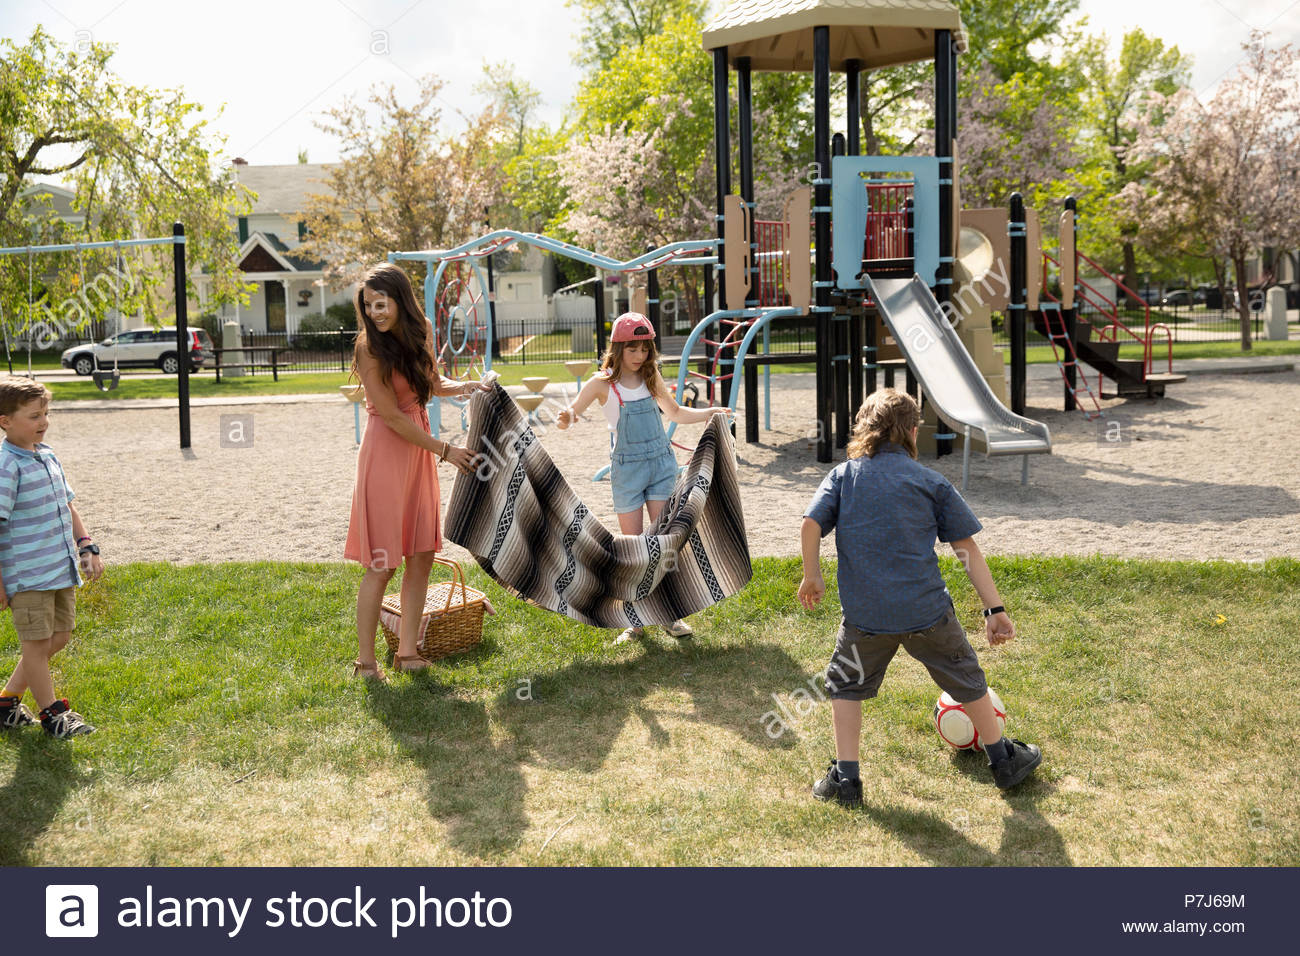 Mother and kids playing, spreading picnic blanket in sunny park - Stock Image